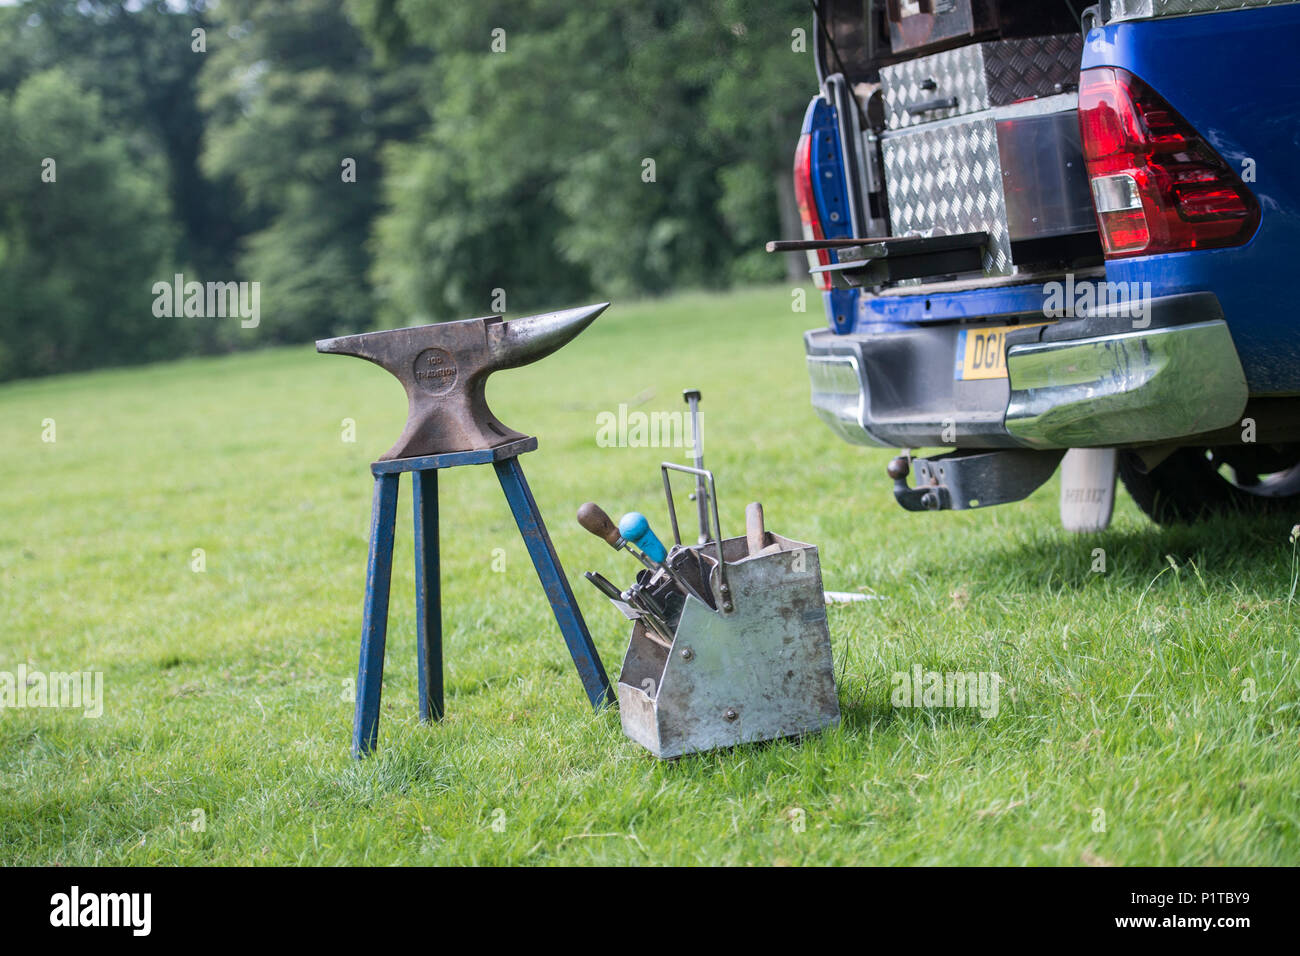 farriers tools and anvil - Stock Image